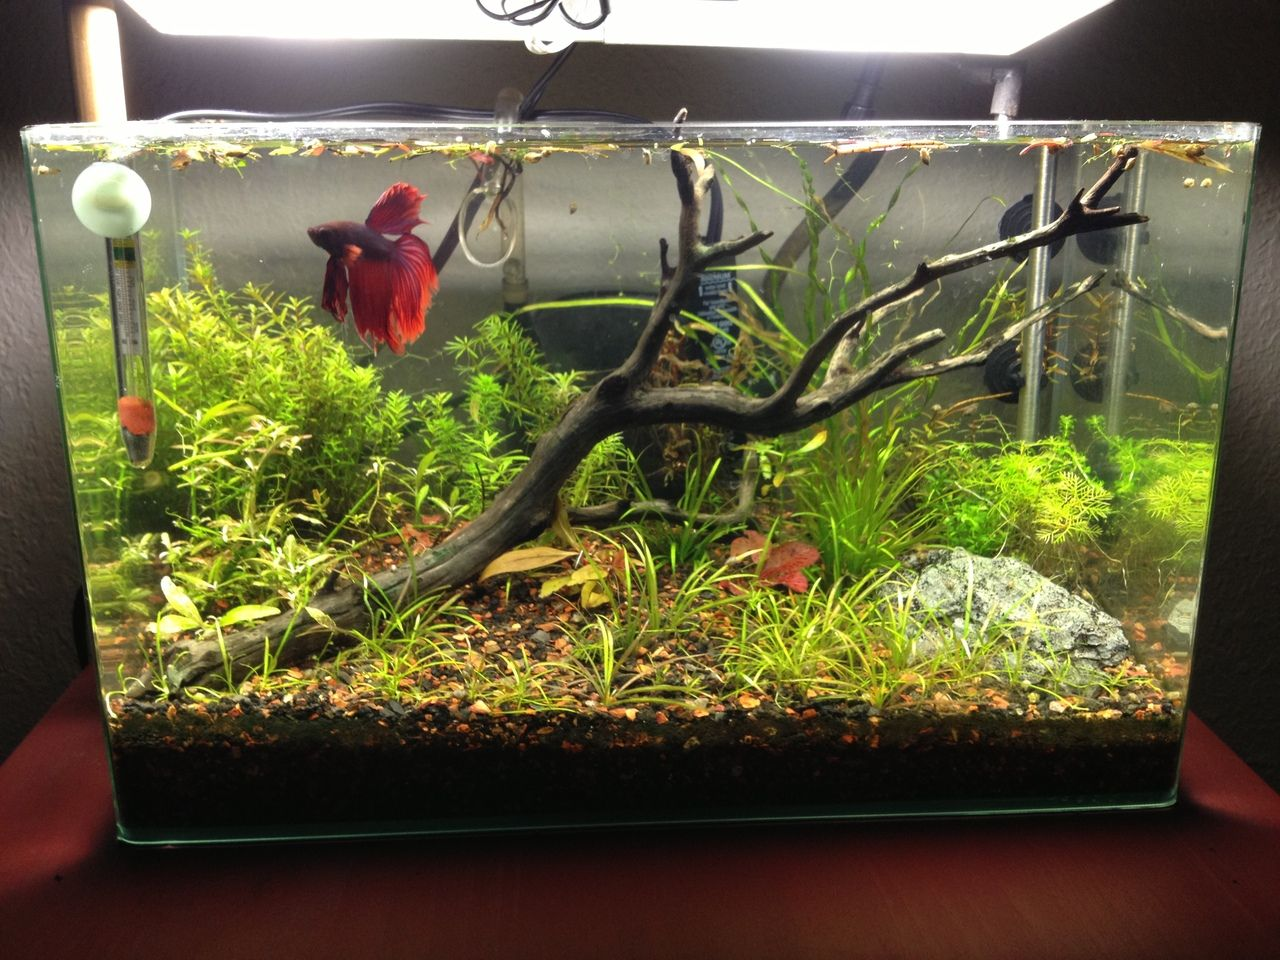 Aquarium fish 5 gallon tank - 6 Gallon Low Tech Betta Tank Betta Aquariumaquarium Terrariumfish